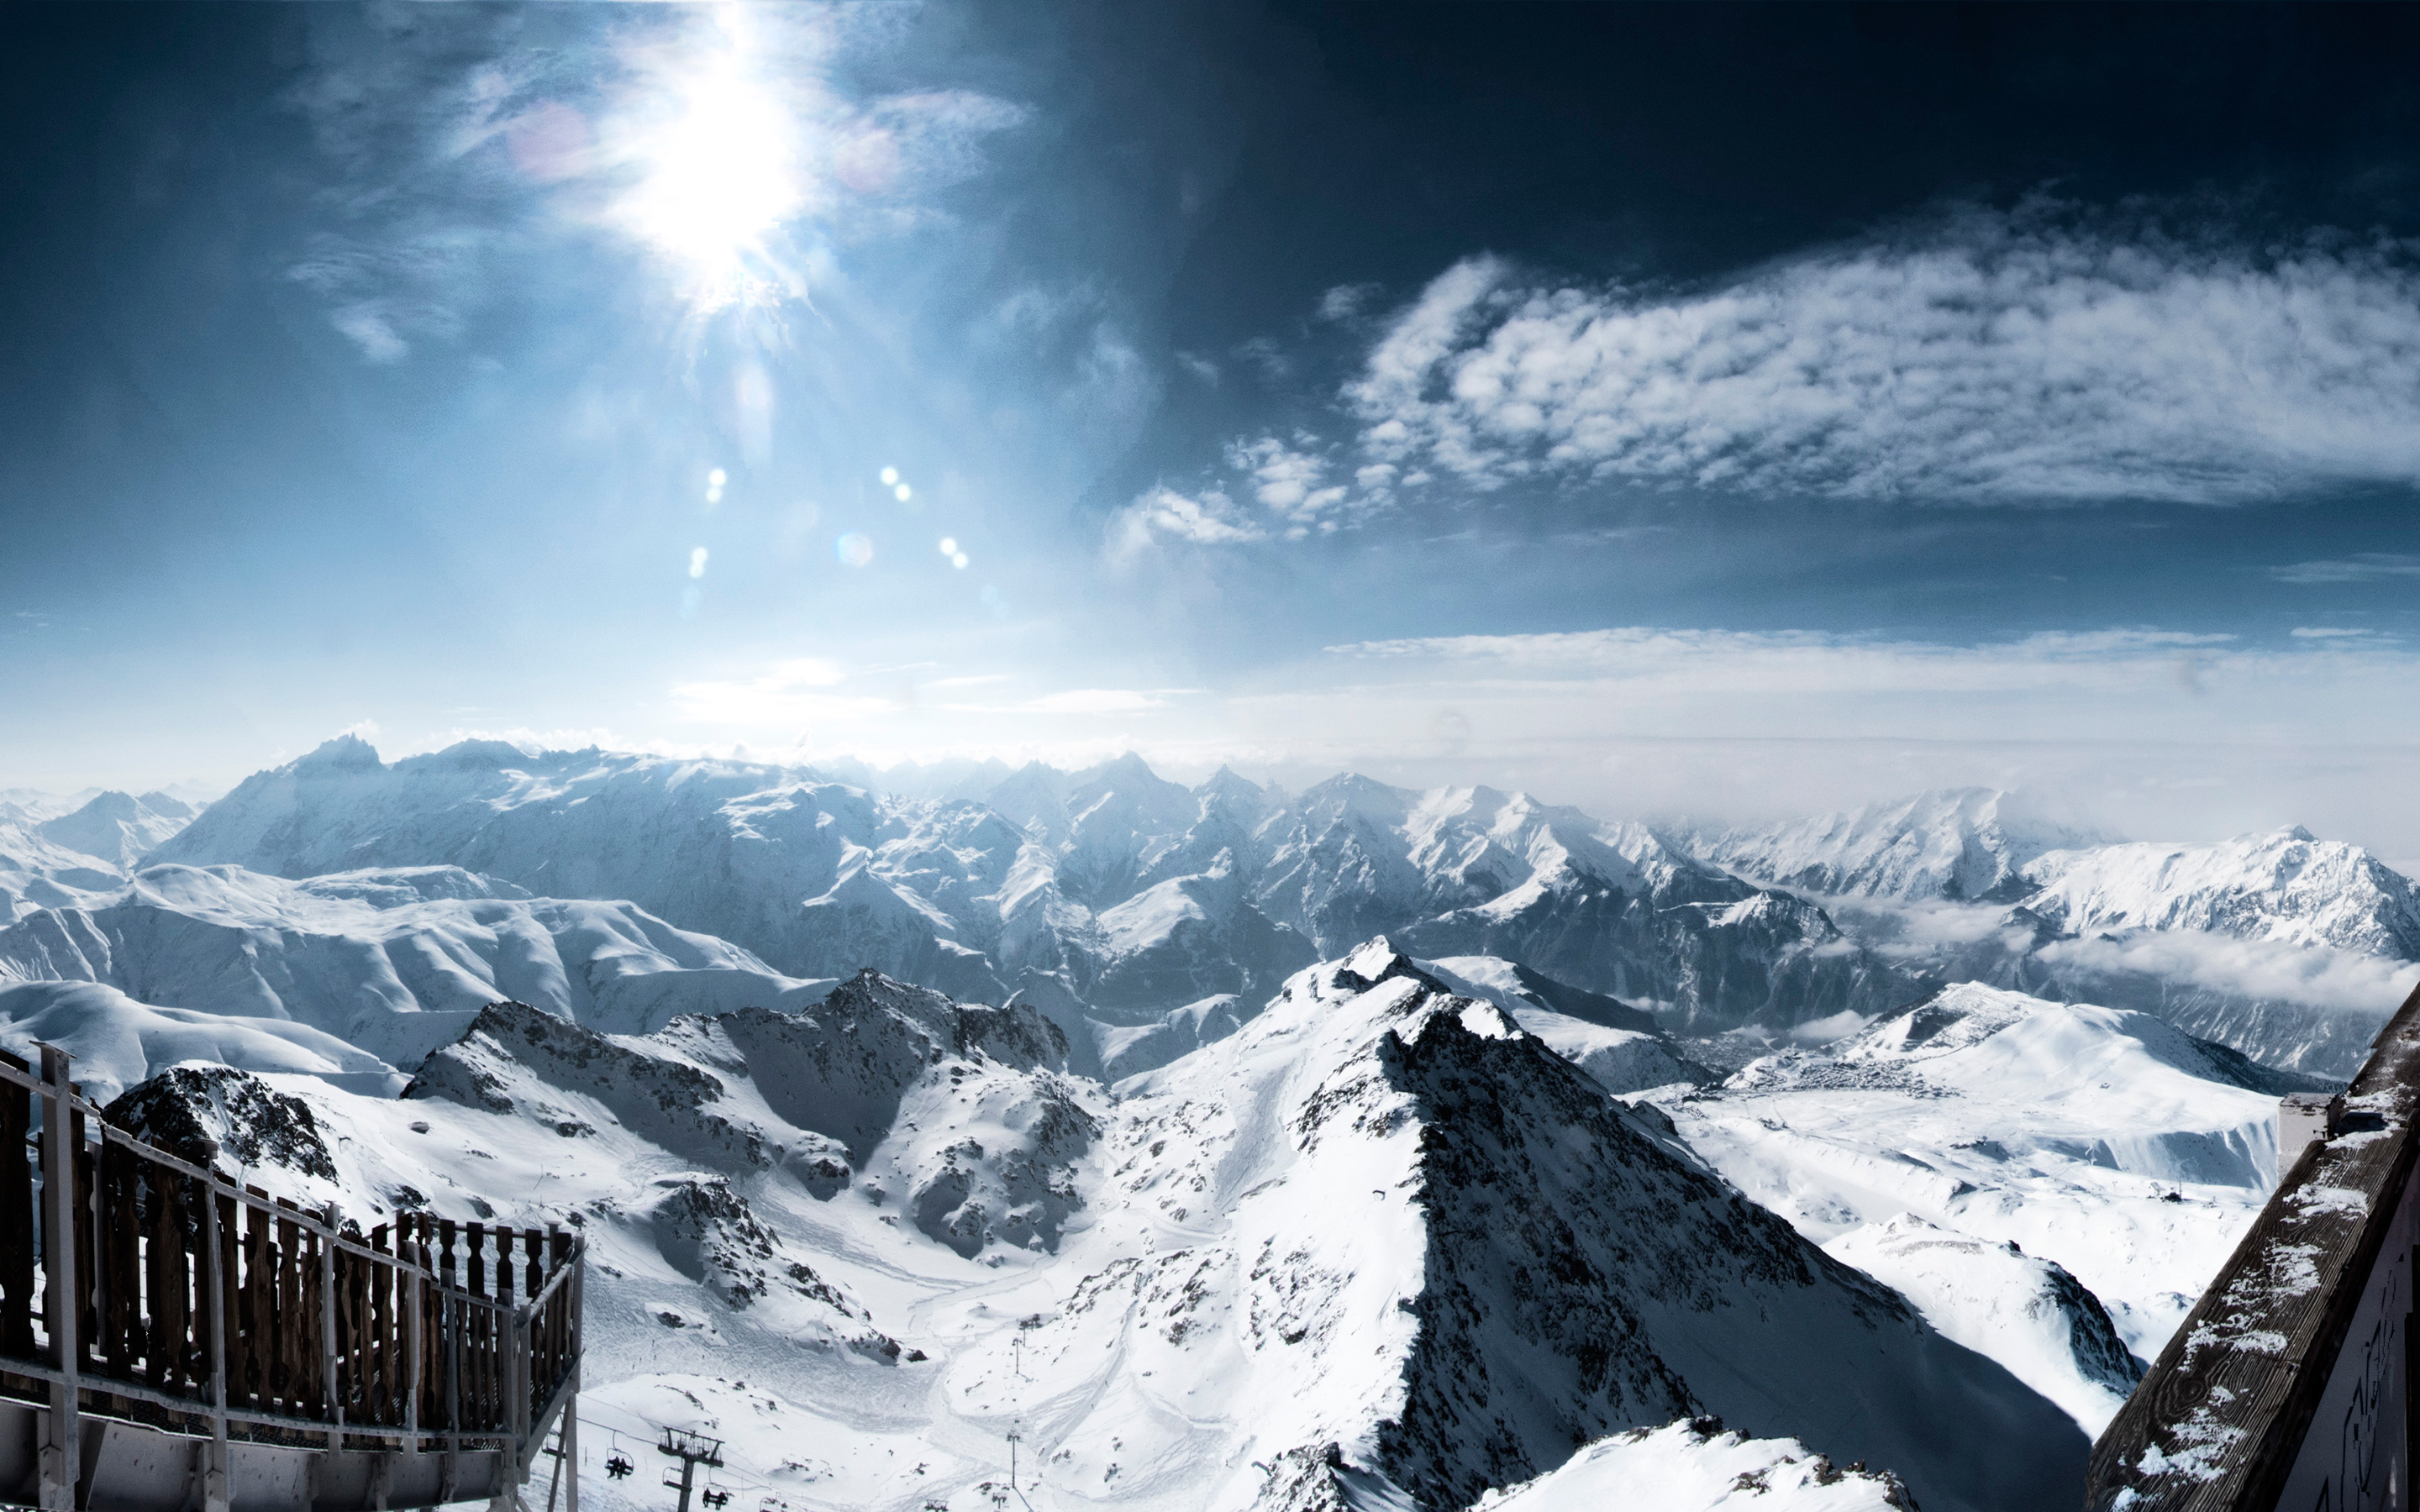 HD Wallpapers Snowy Alps